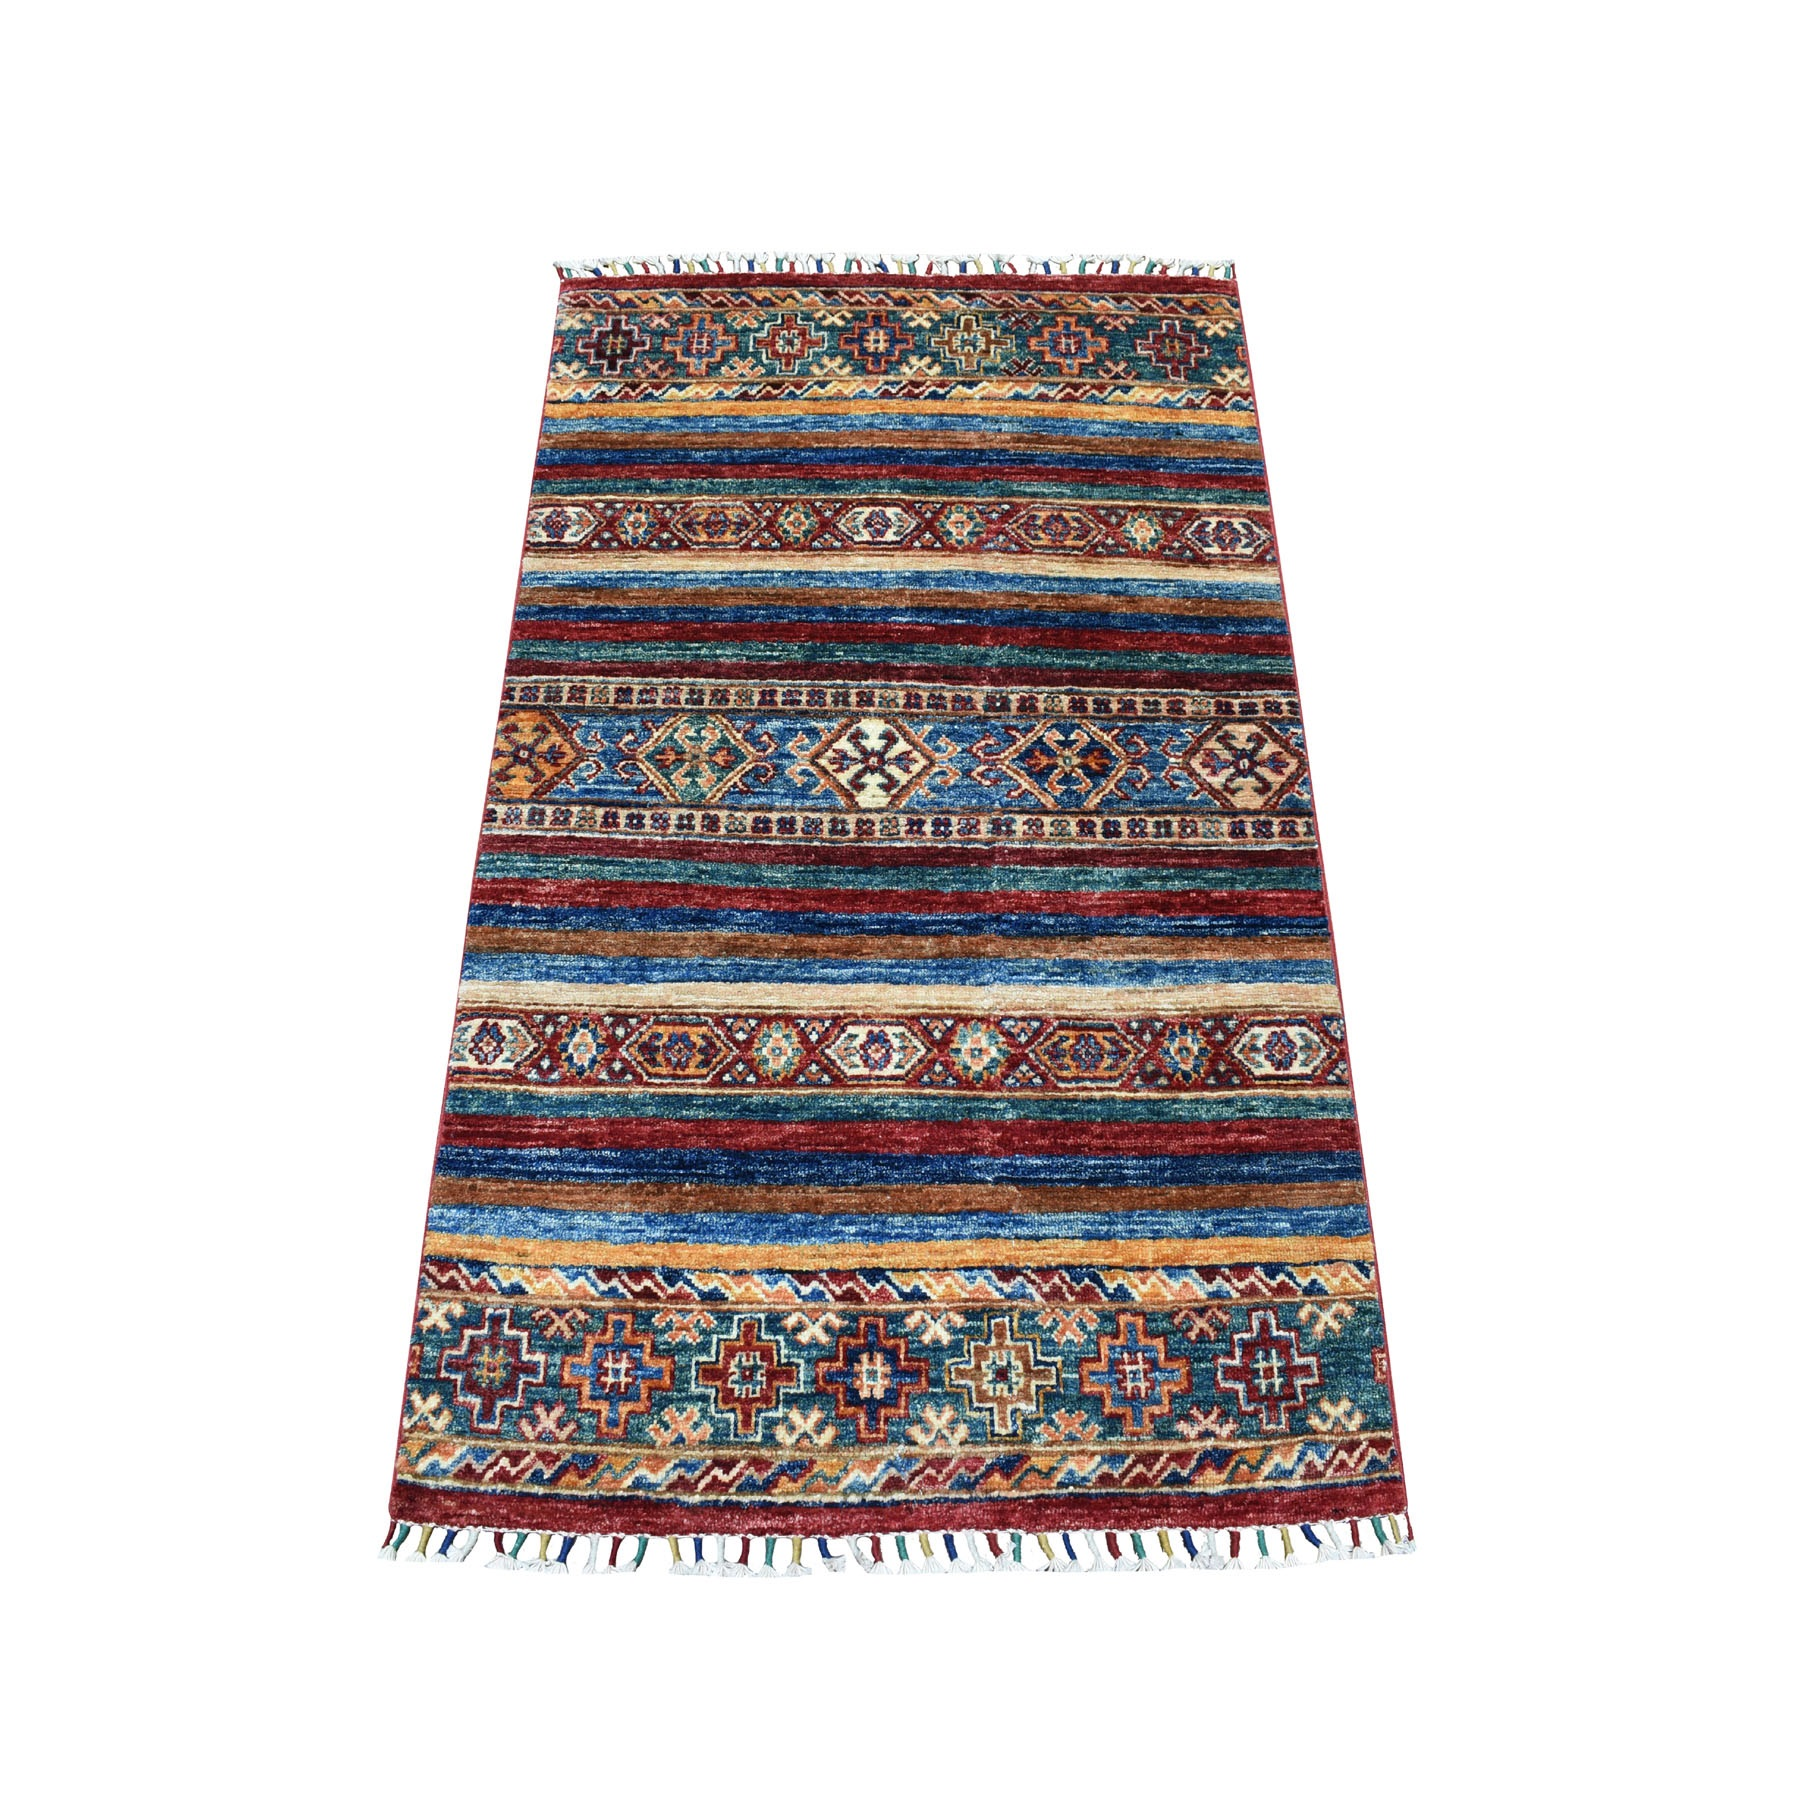 "2'10""x4'4"" Khorjin Design Colorful Super Kazak Pure Wool Hand Woven Oriental Rug"